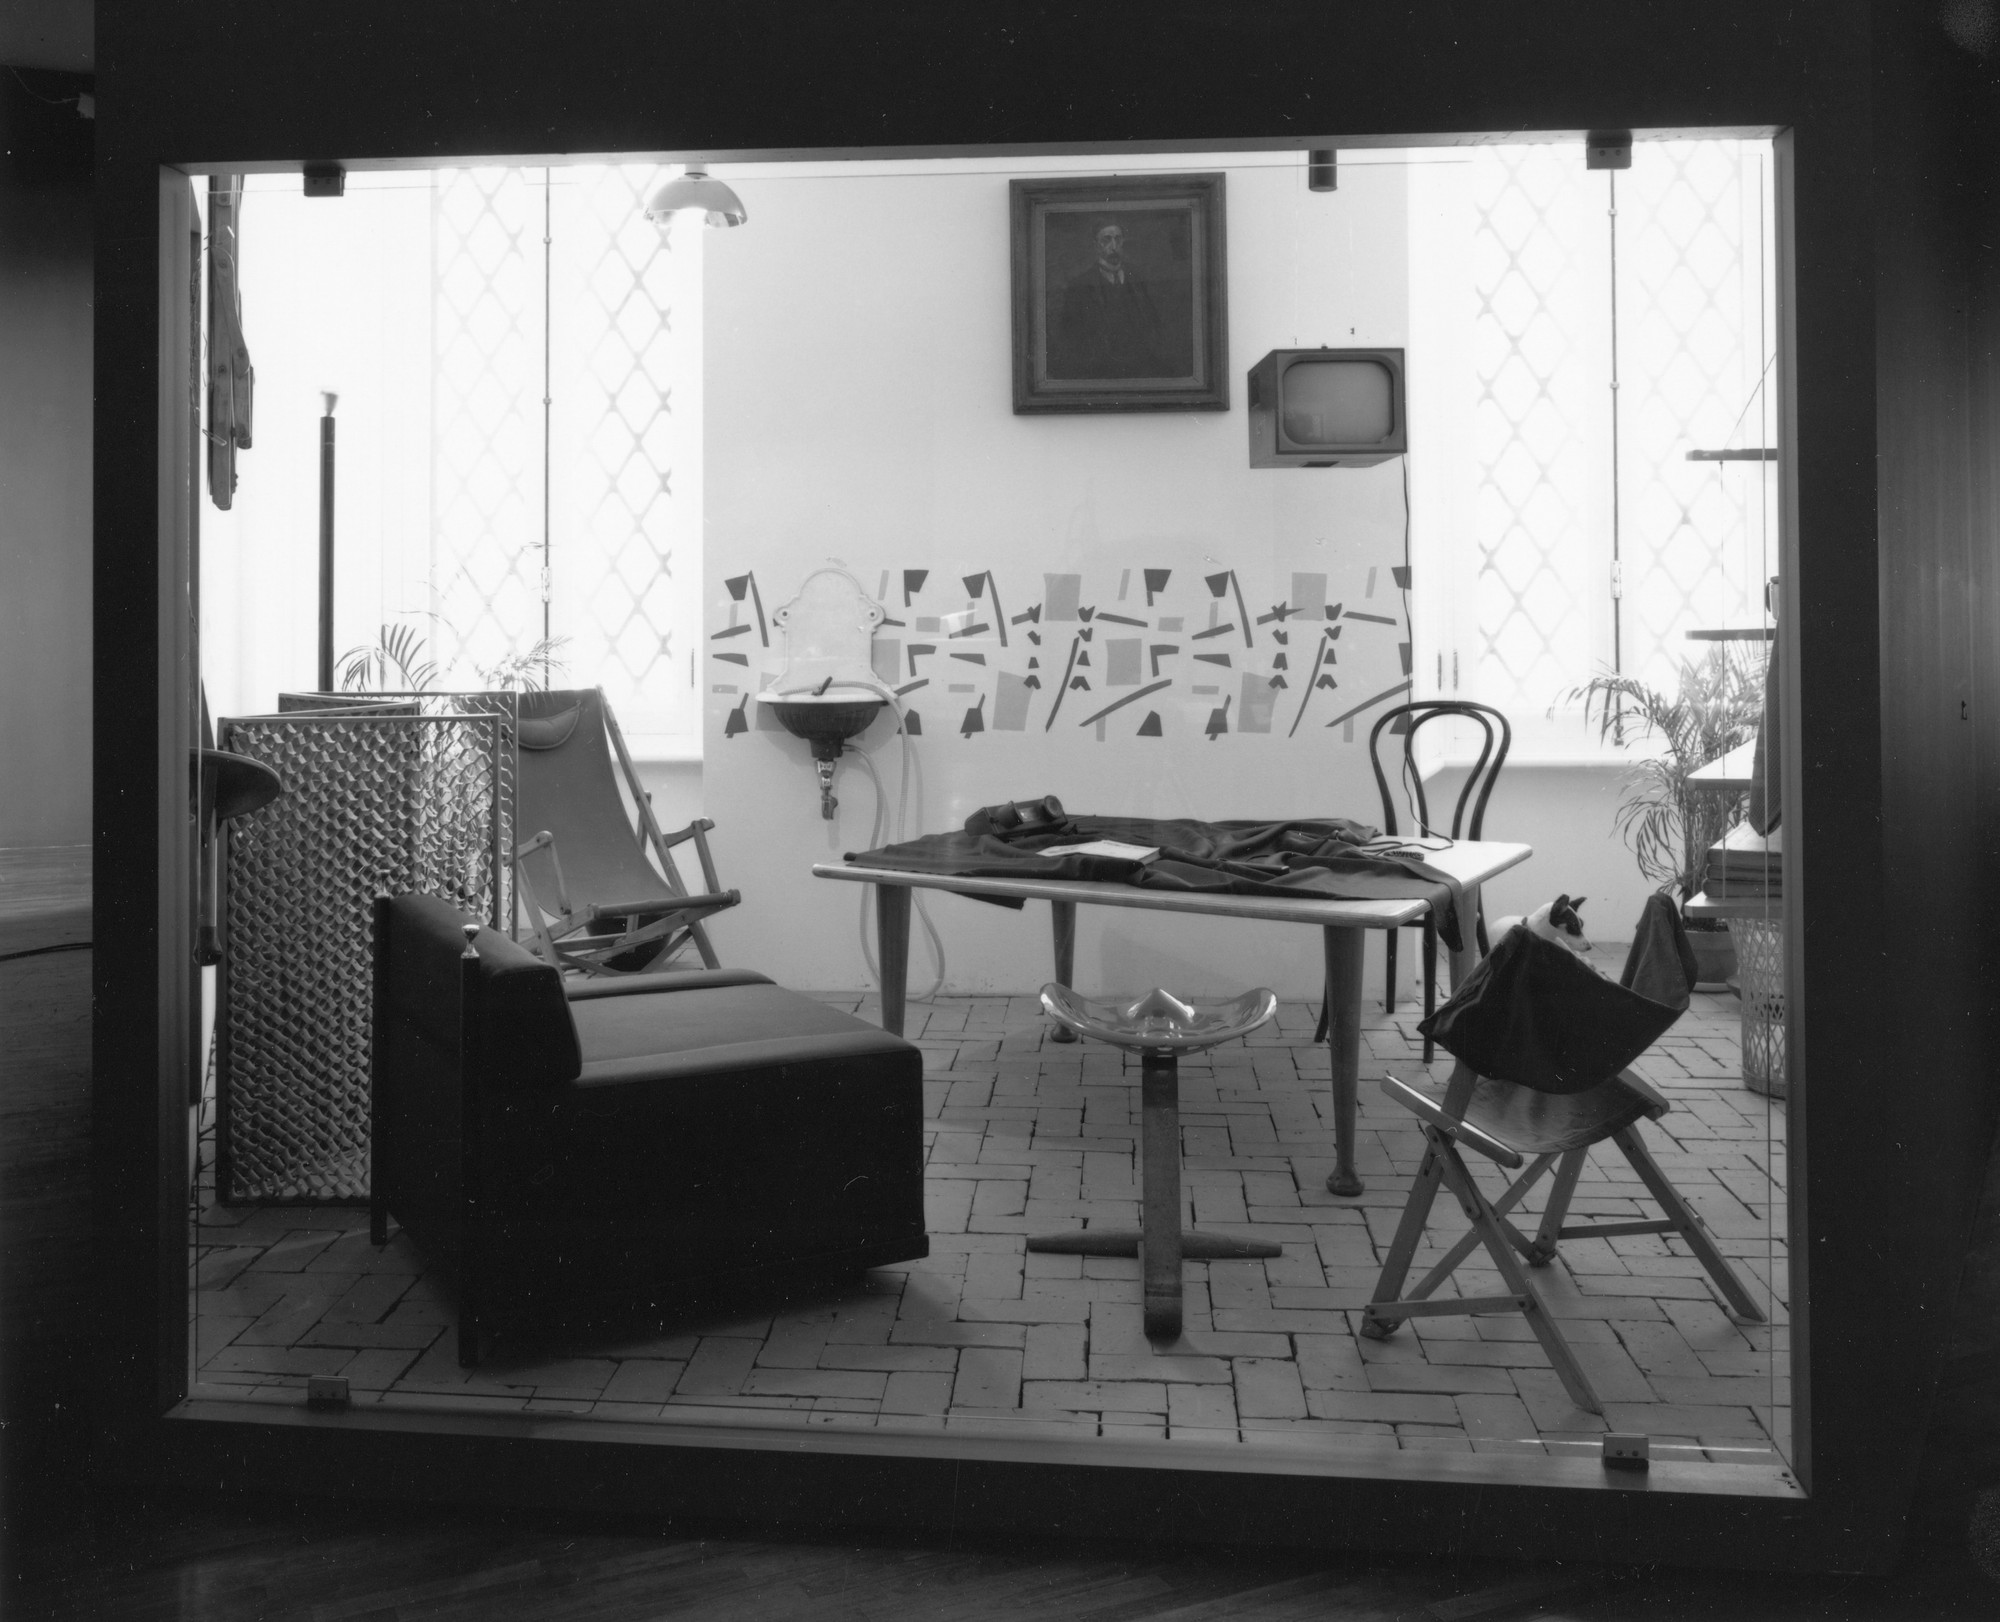 Installation view of Achille Castiglioni: Design! at The Museum of Modern Art, New York. Photo: Thomas Griesel